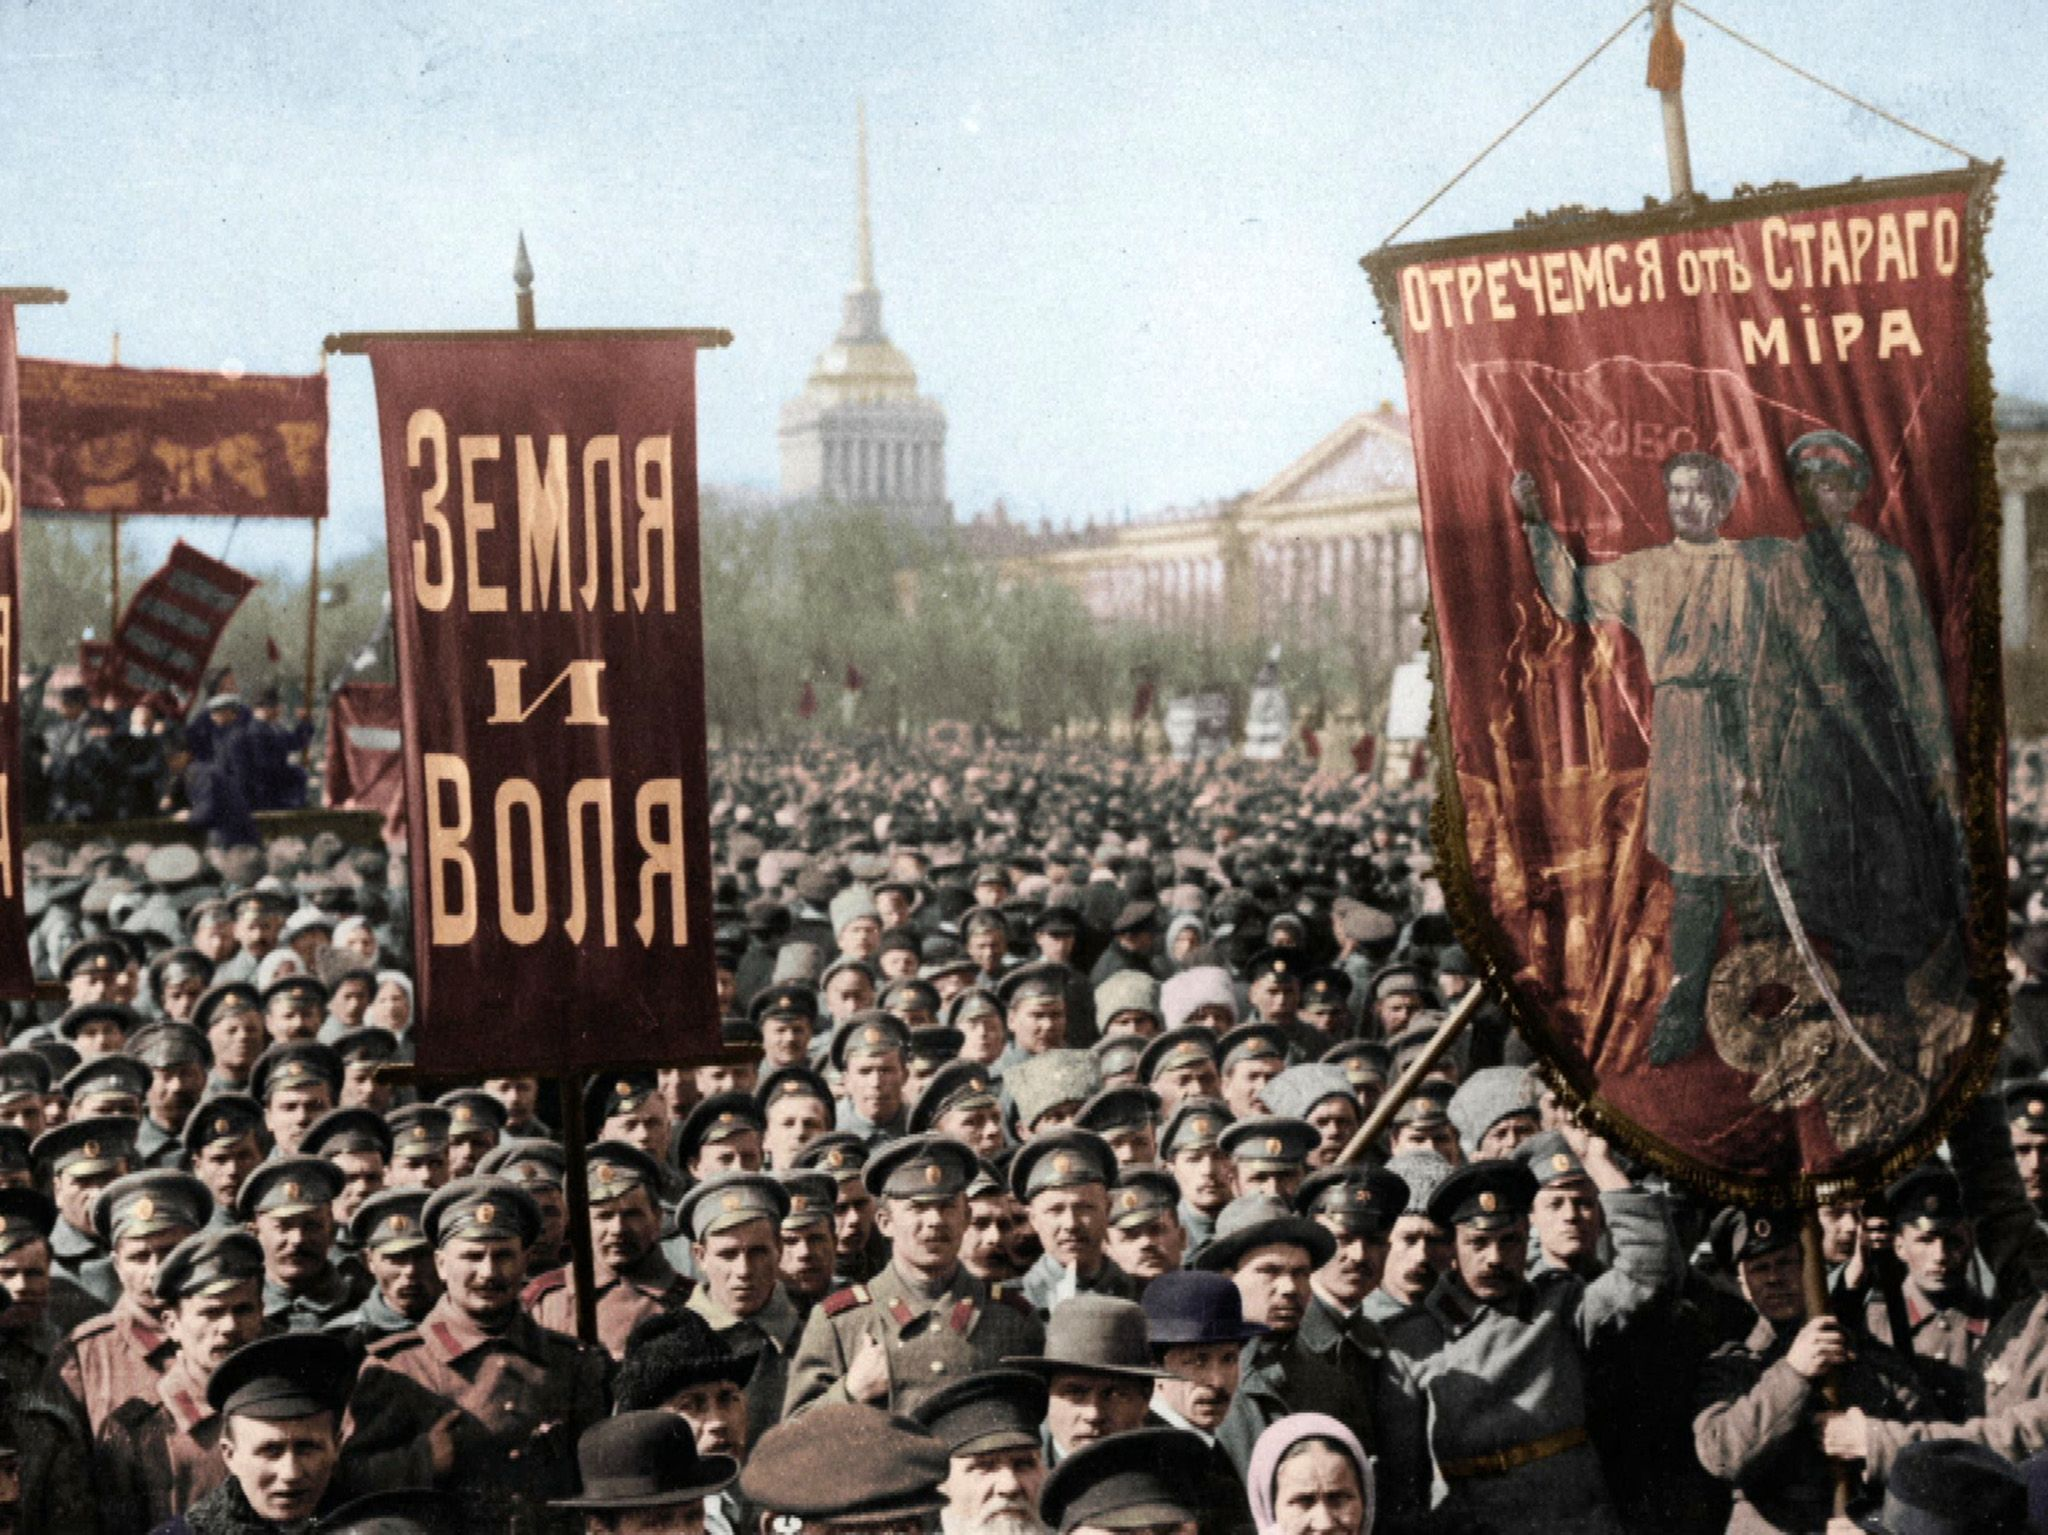 The February Revolution. This image is from 1917: One Year, Two Revolutions. [Foto del giorno - ottobre 2017]